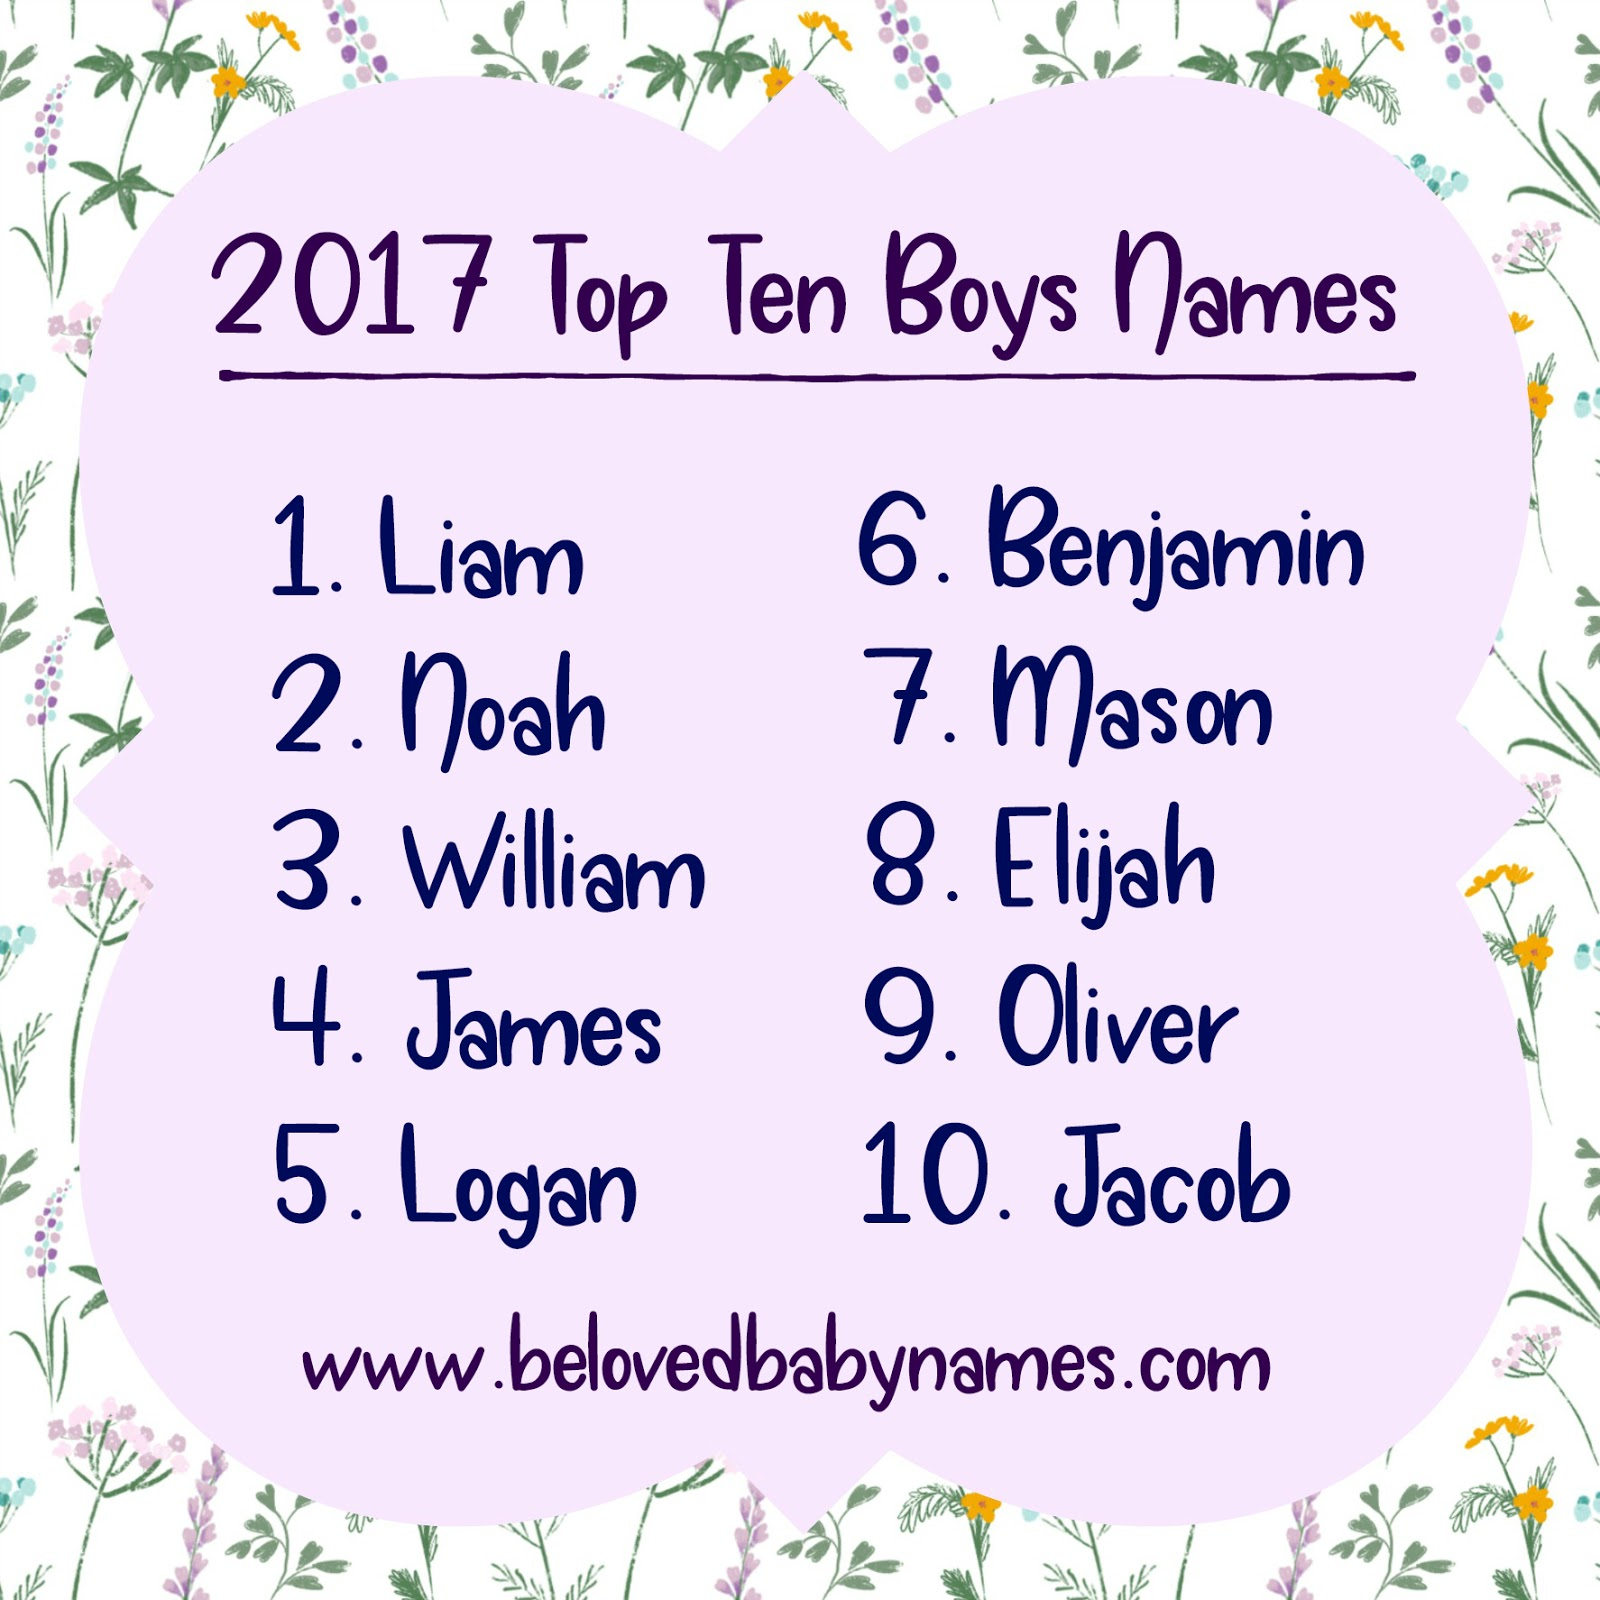 What are the names of the boys happy